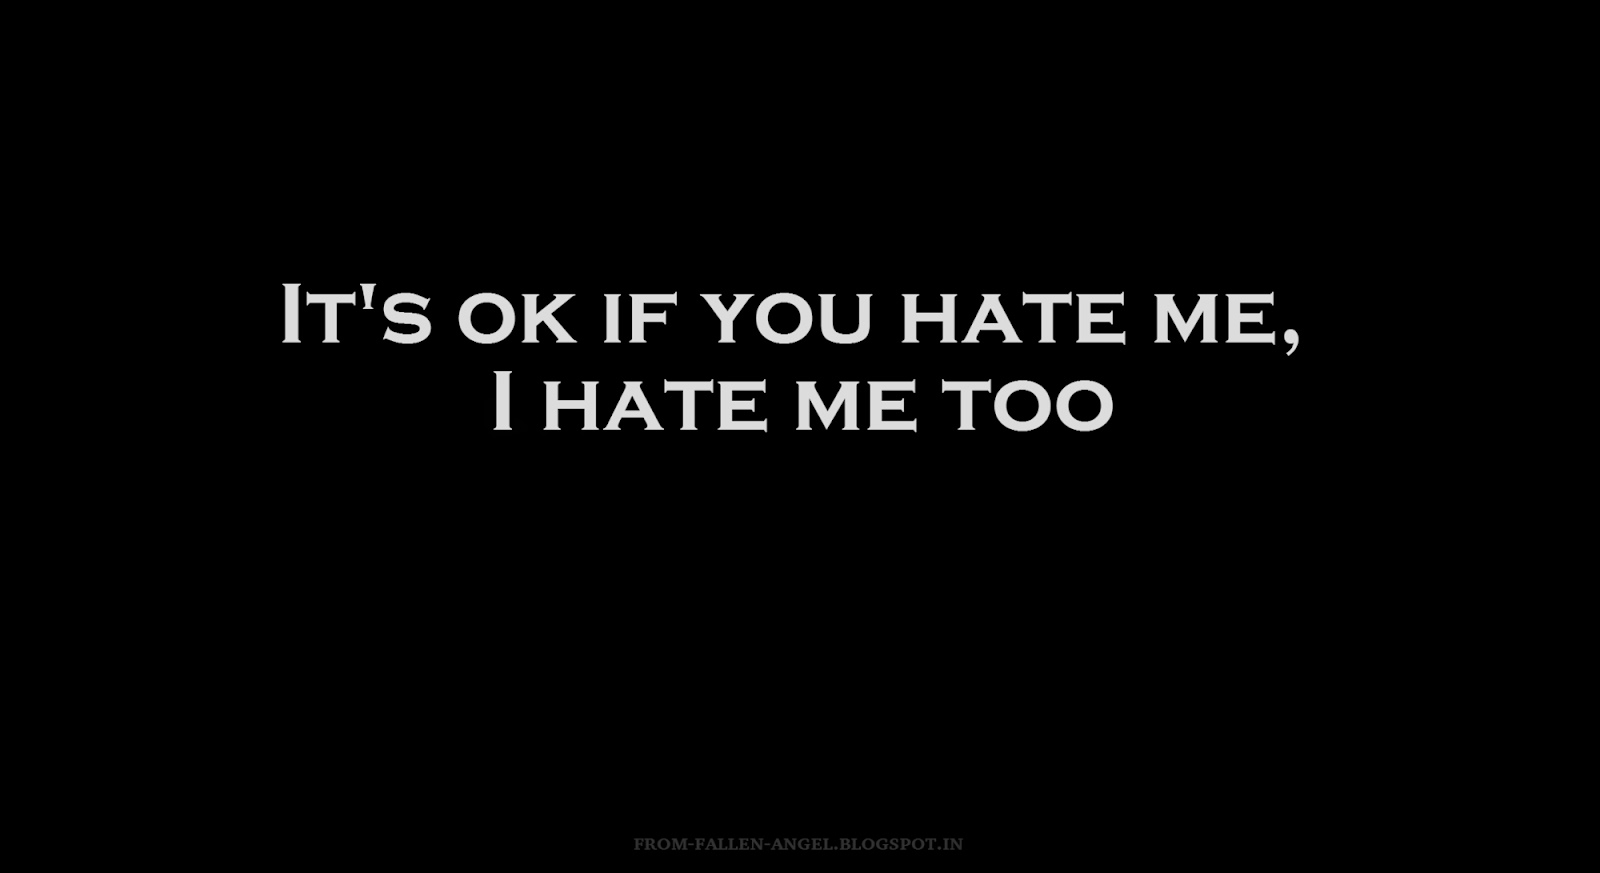 It's ok if you hate me, I hate me too